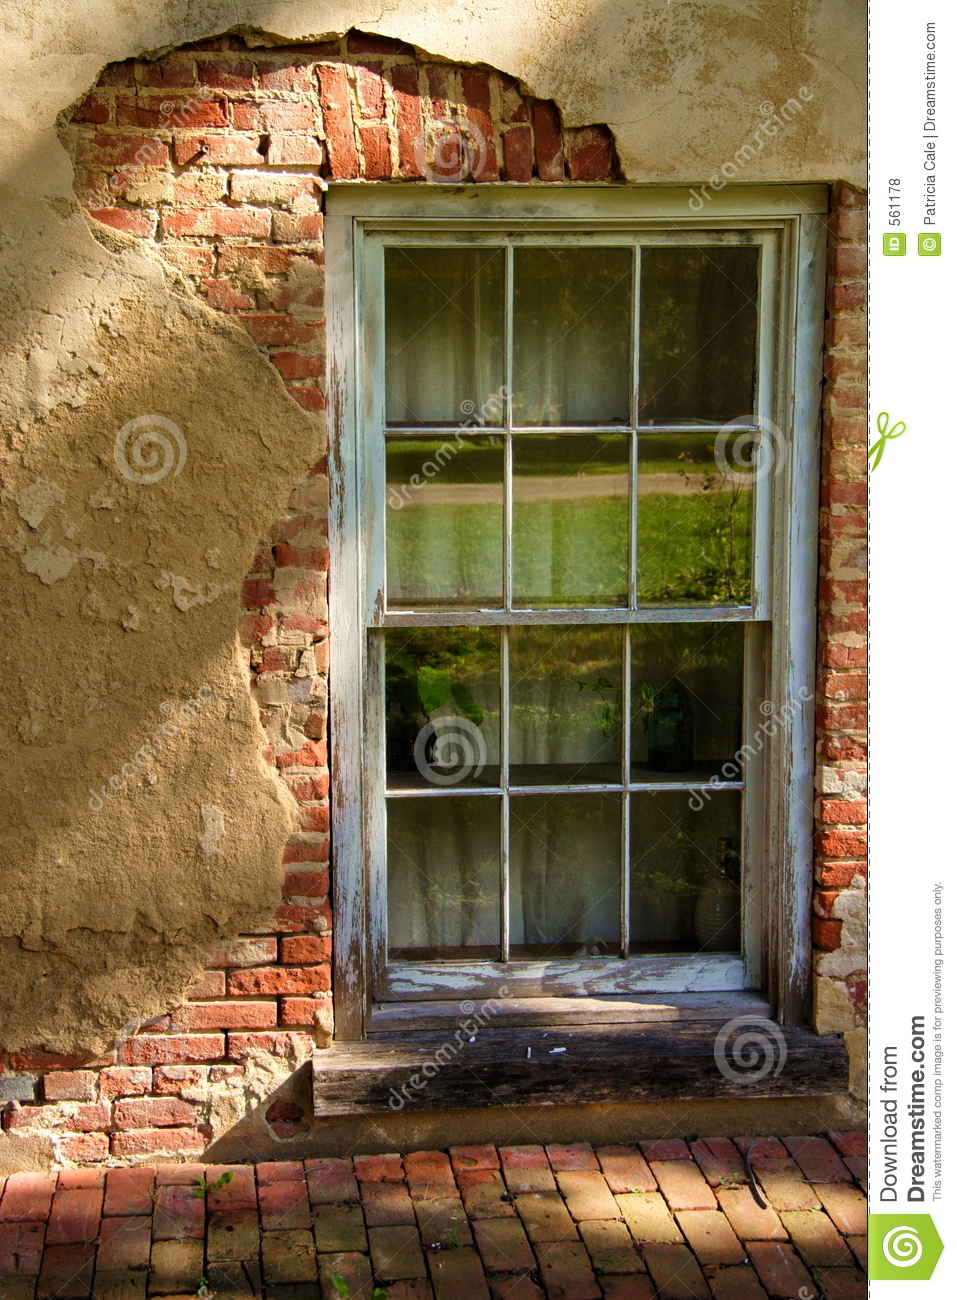 Stucco Over Brick 2 Stock Photo Image Of Illinois Frames